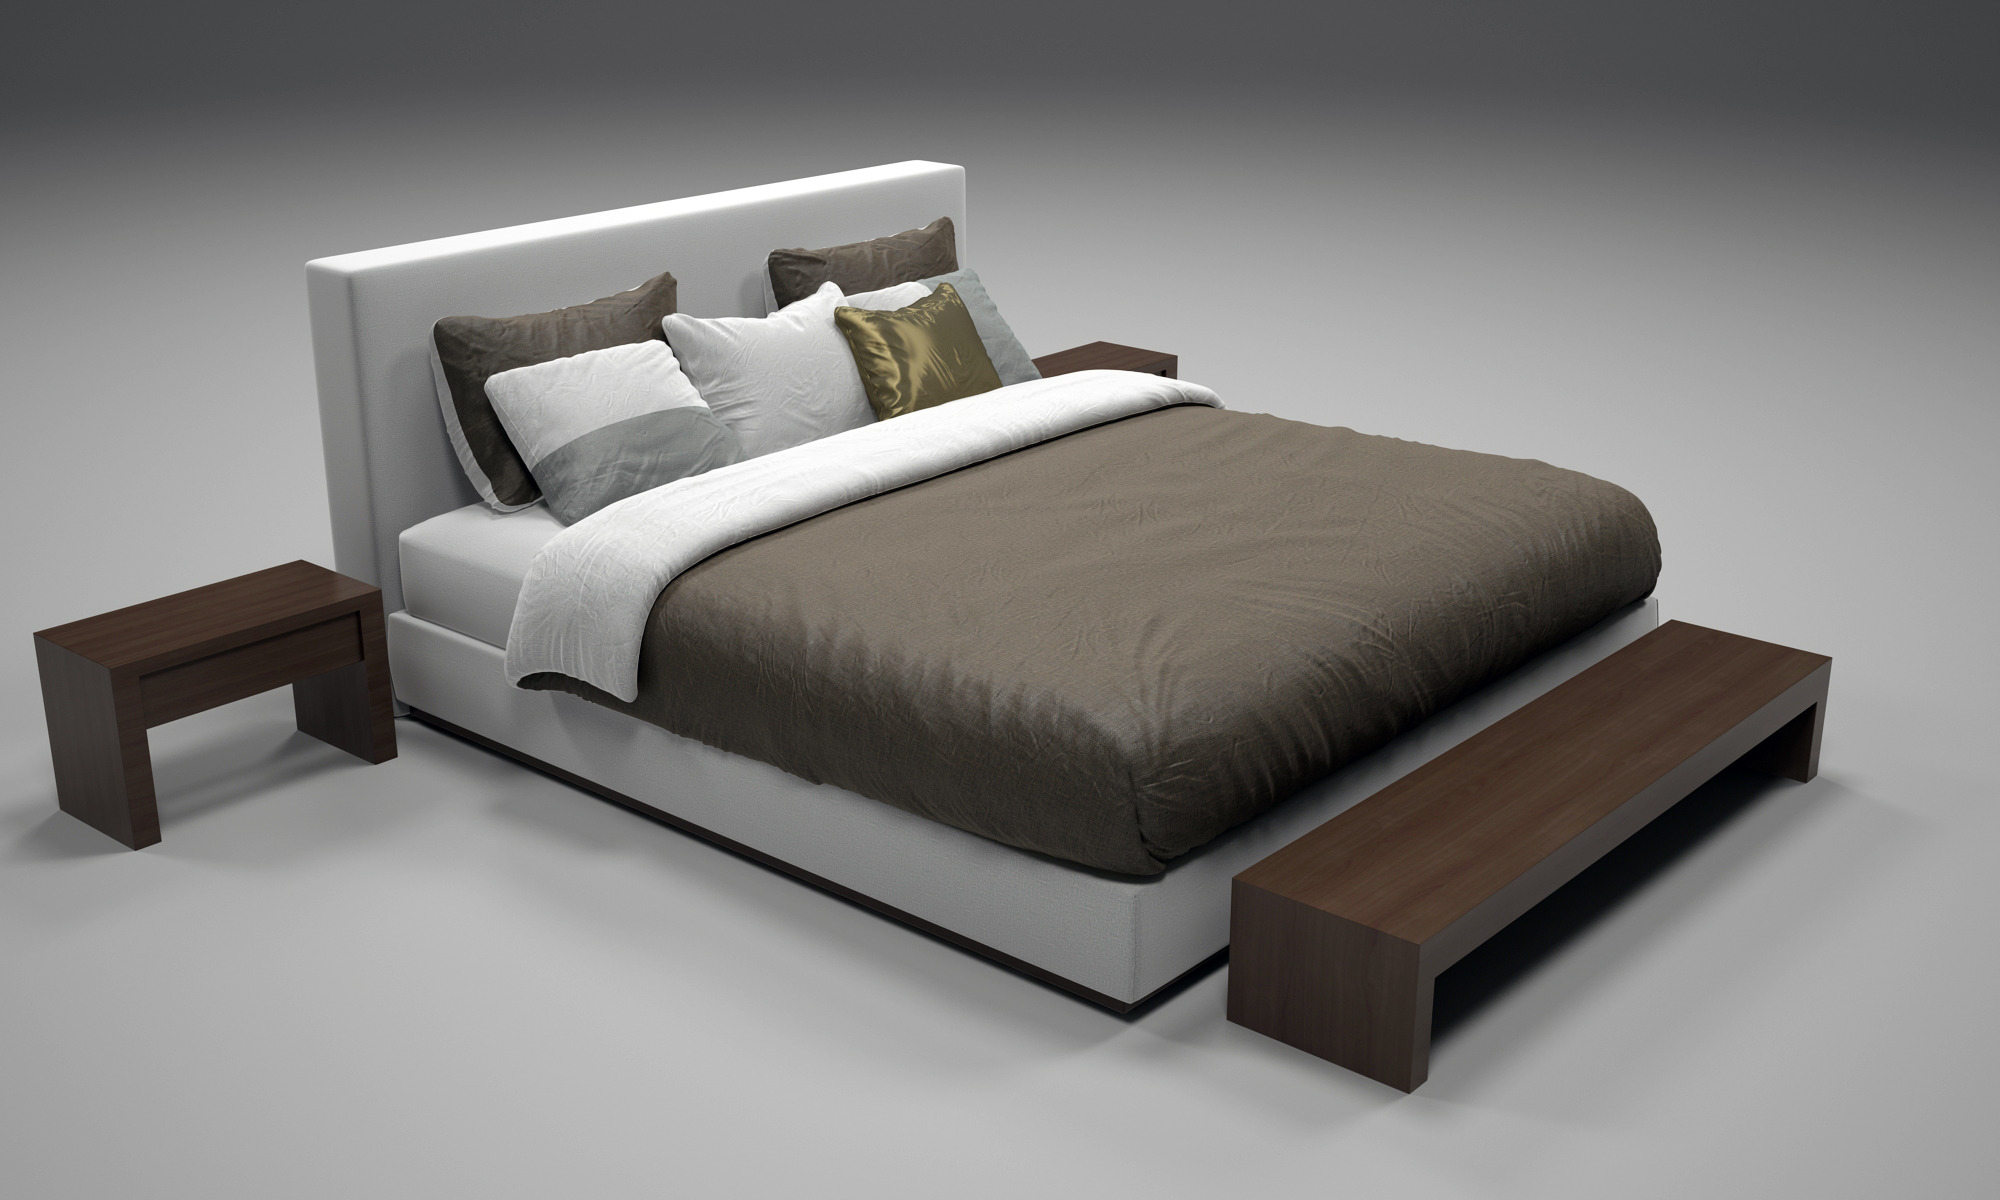 Realistic Bed Model With Materials 2 By Numetal 3docean